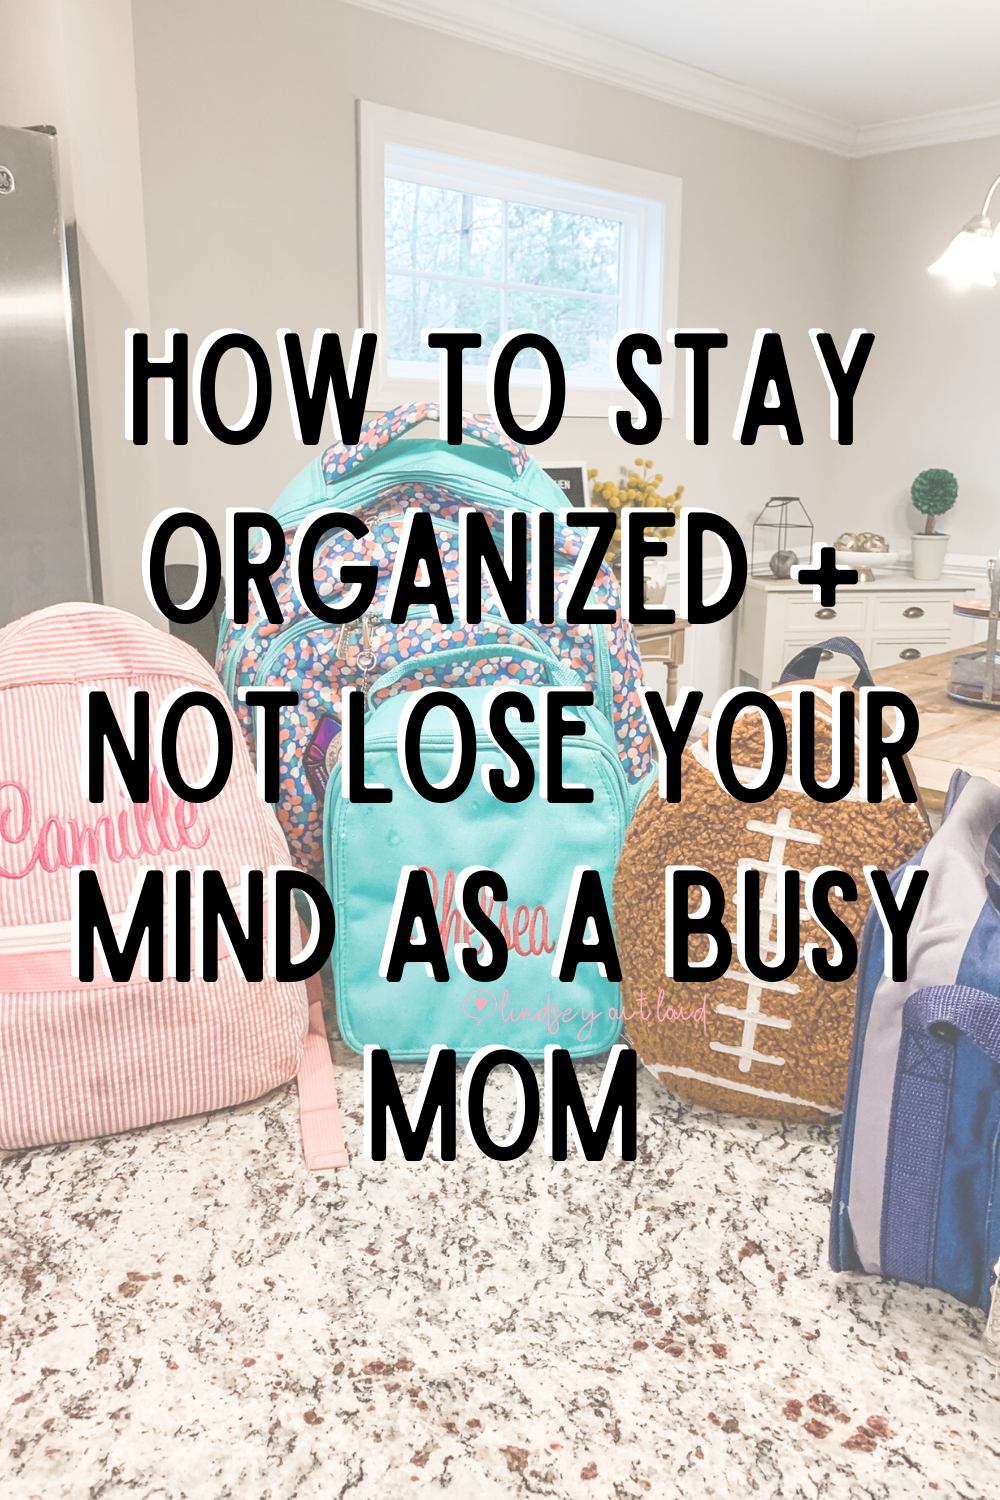 How to Stay Organized + Not Lose Your Mind as a Busy Mom